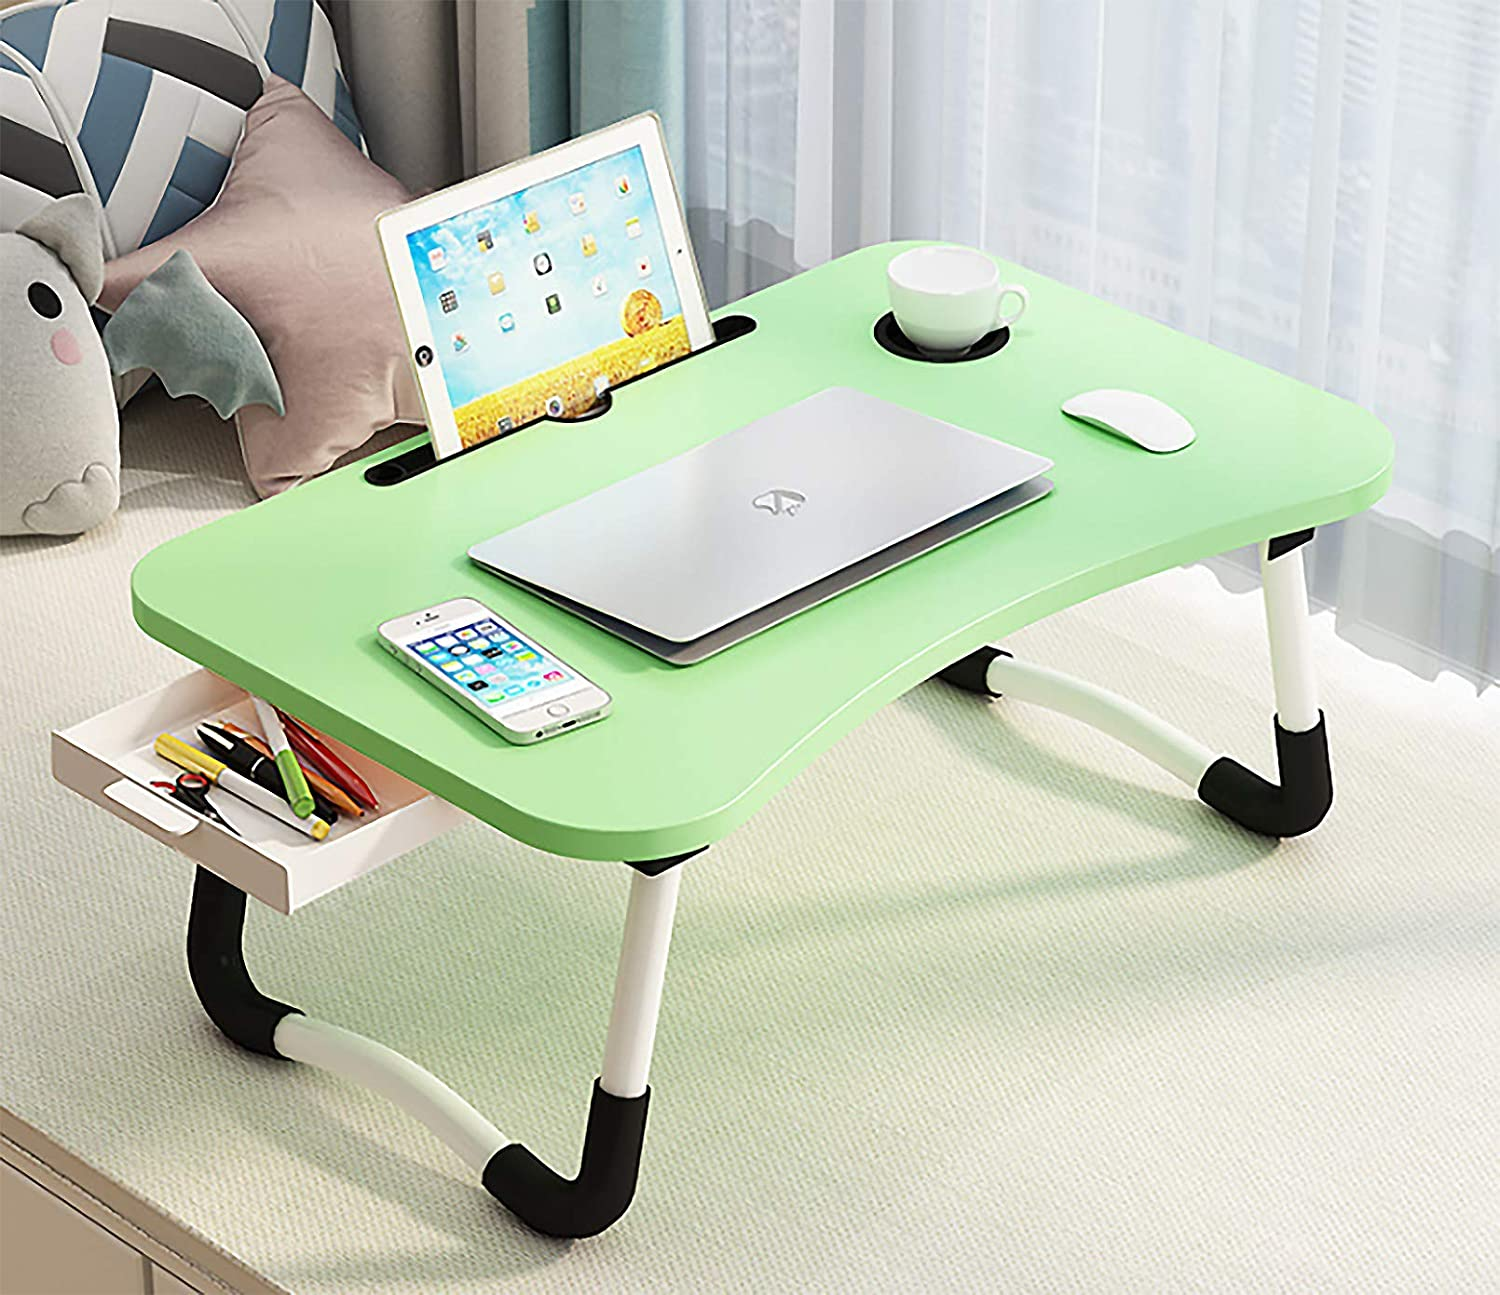 "Laptop Desk, Lap Desk for Laptop, Foldable Laptop Stand, Folding Computer Desk, Laptop Computer Desk Size 23.6"" x 15.8"" x 11.25"",is Very Suitable in Bed Watching Movies and Office (Green)"